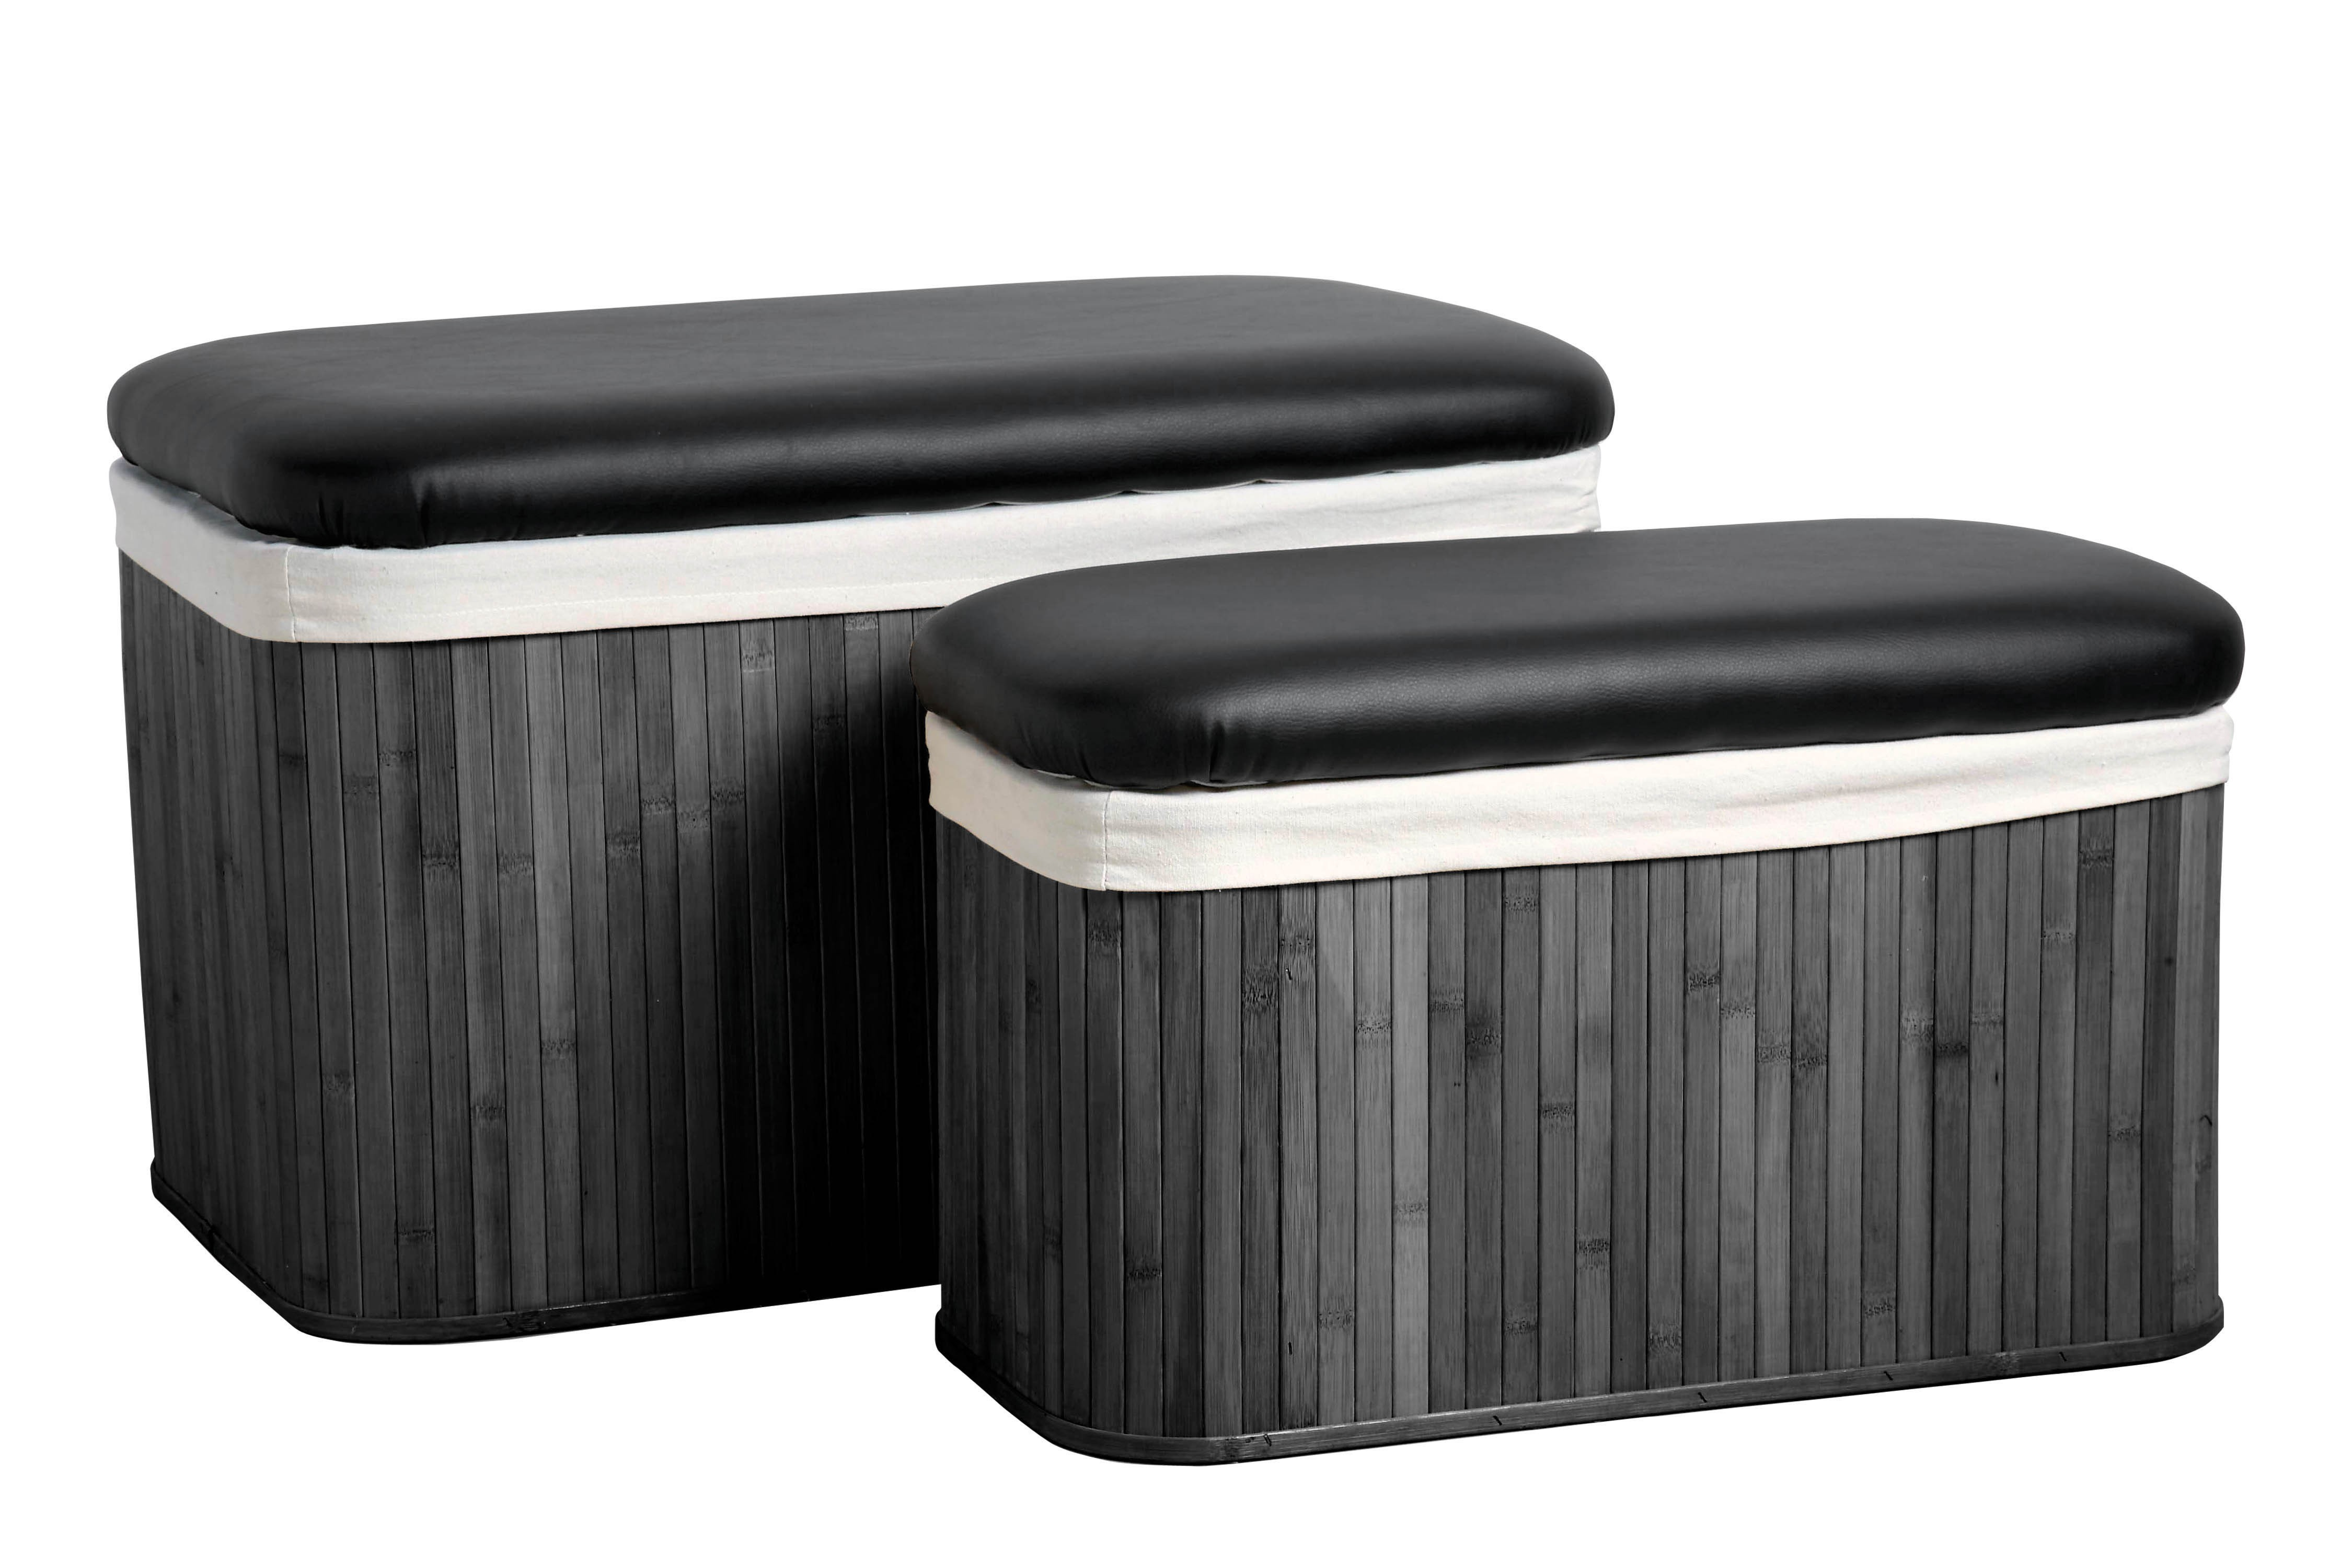 Bamboo Storage Ottomans - Black, Set of 2